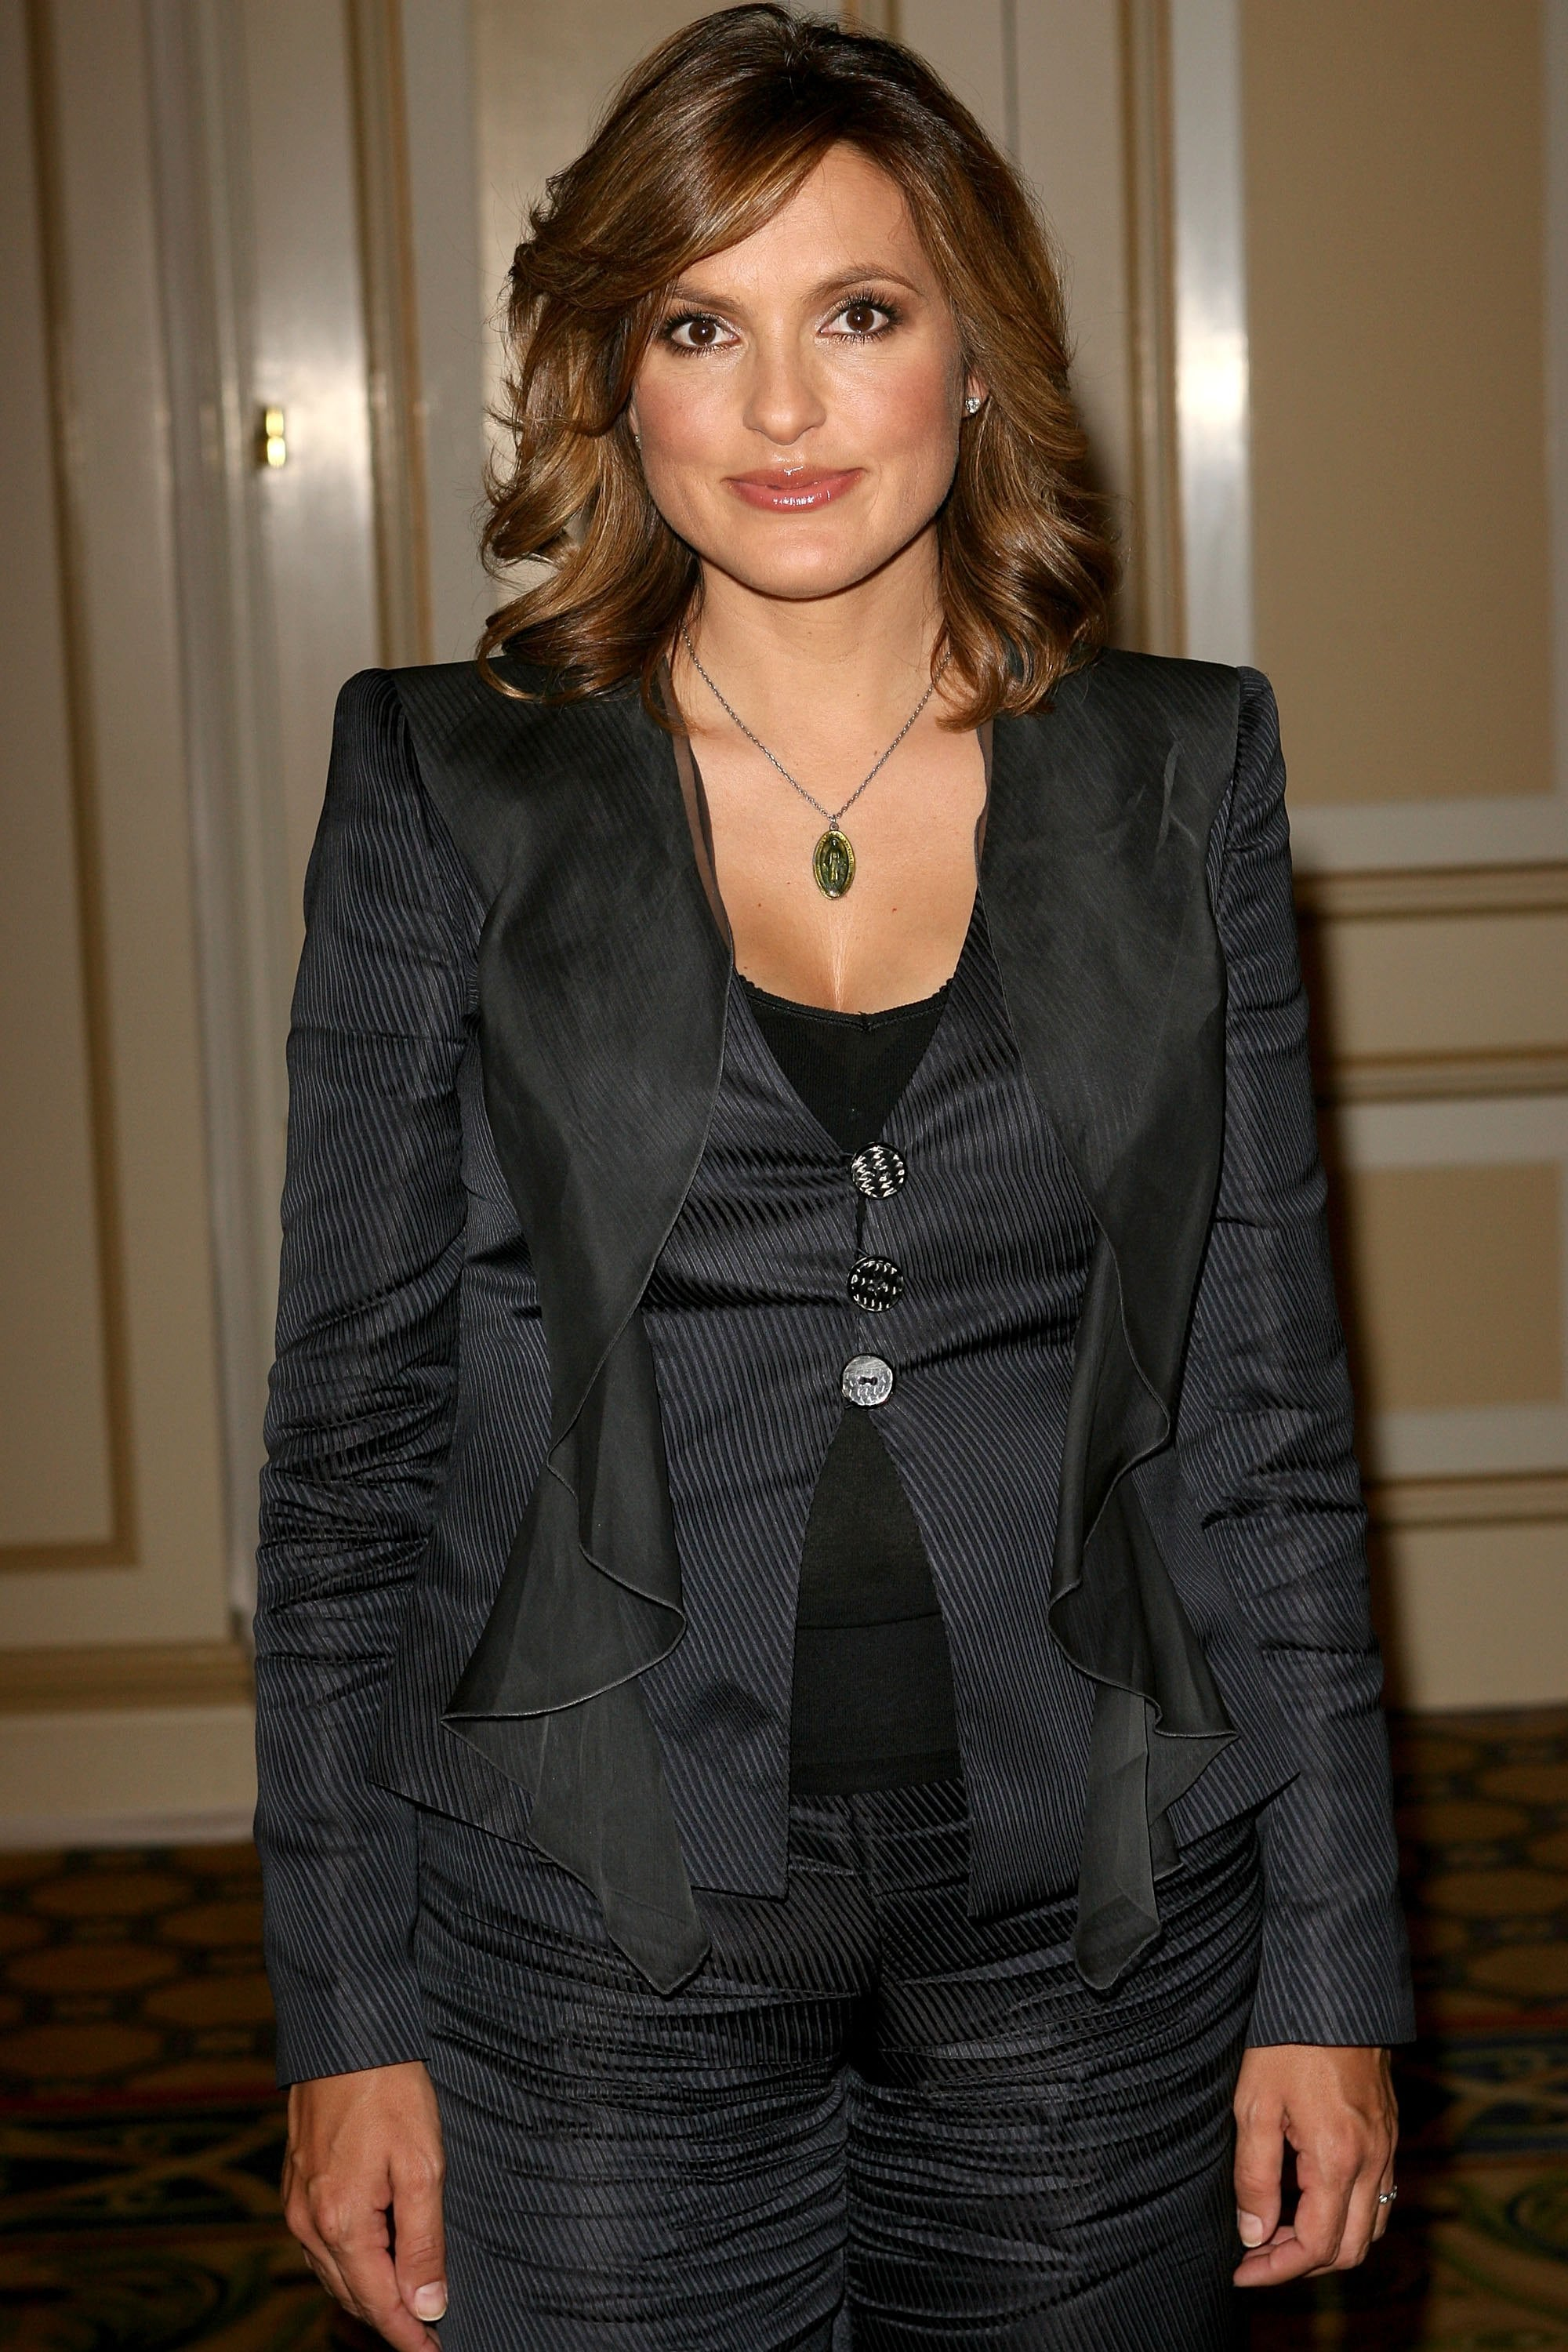 37 Hot Pictures Of Mariska Hargitay Are Too Damn Hot For ...